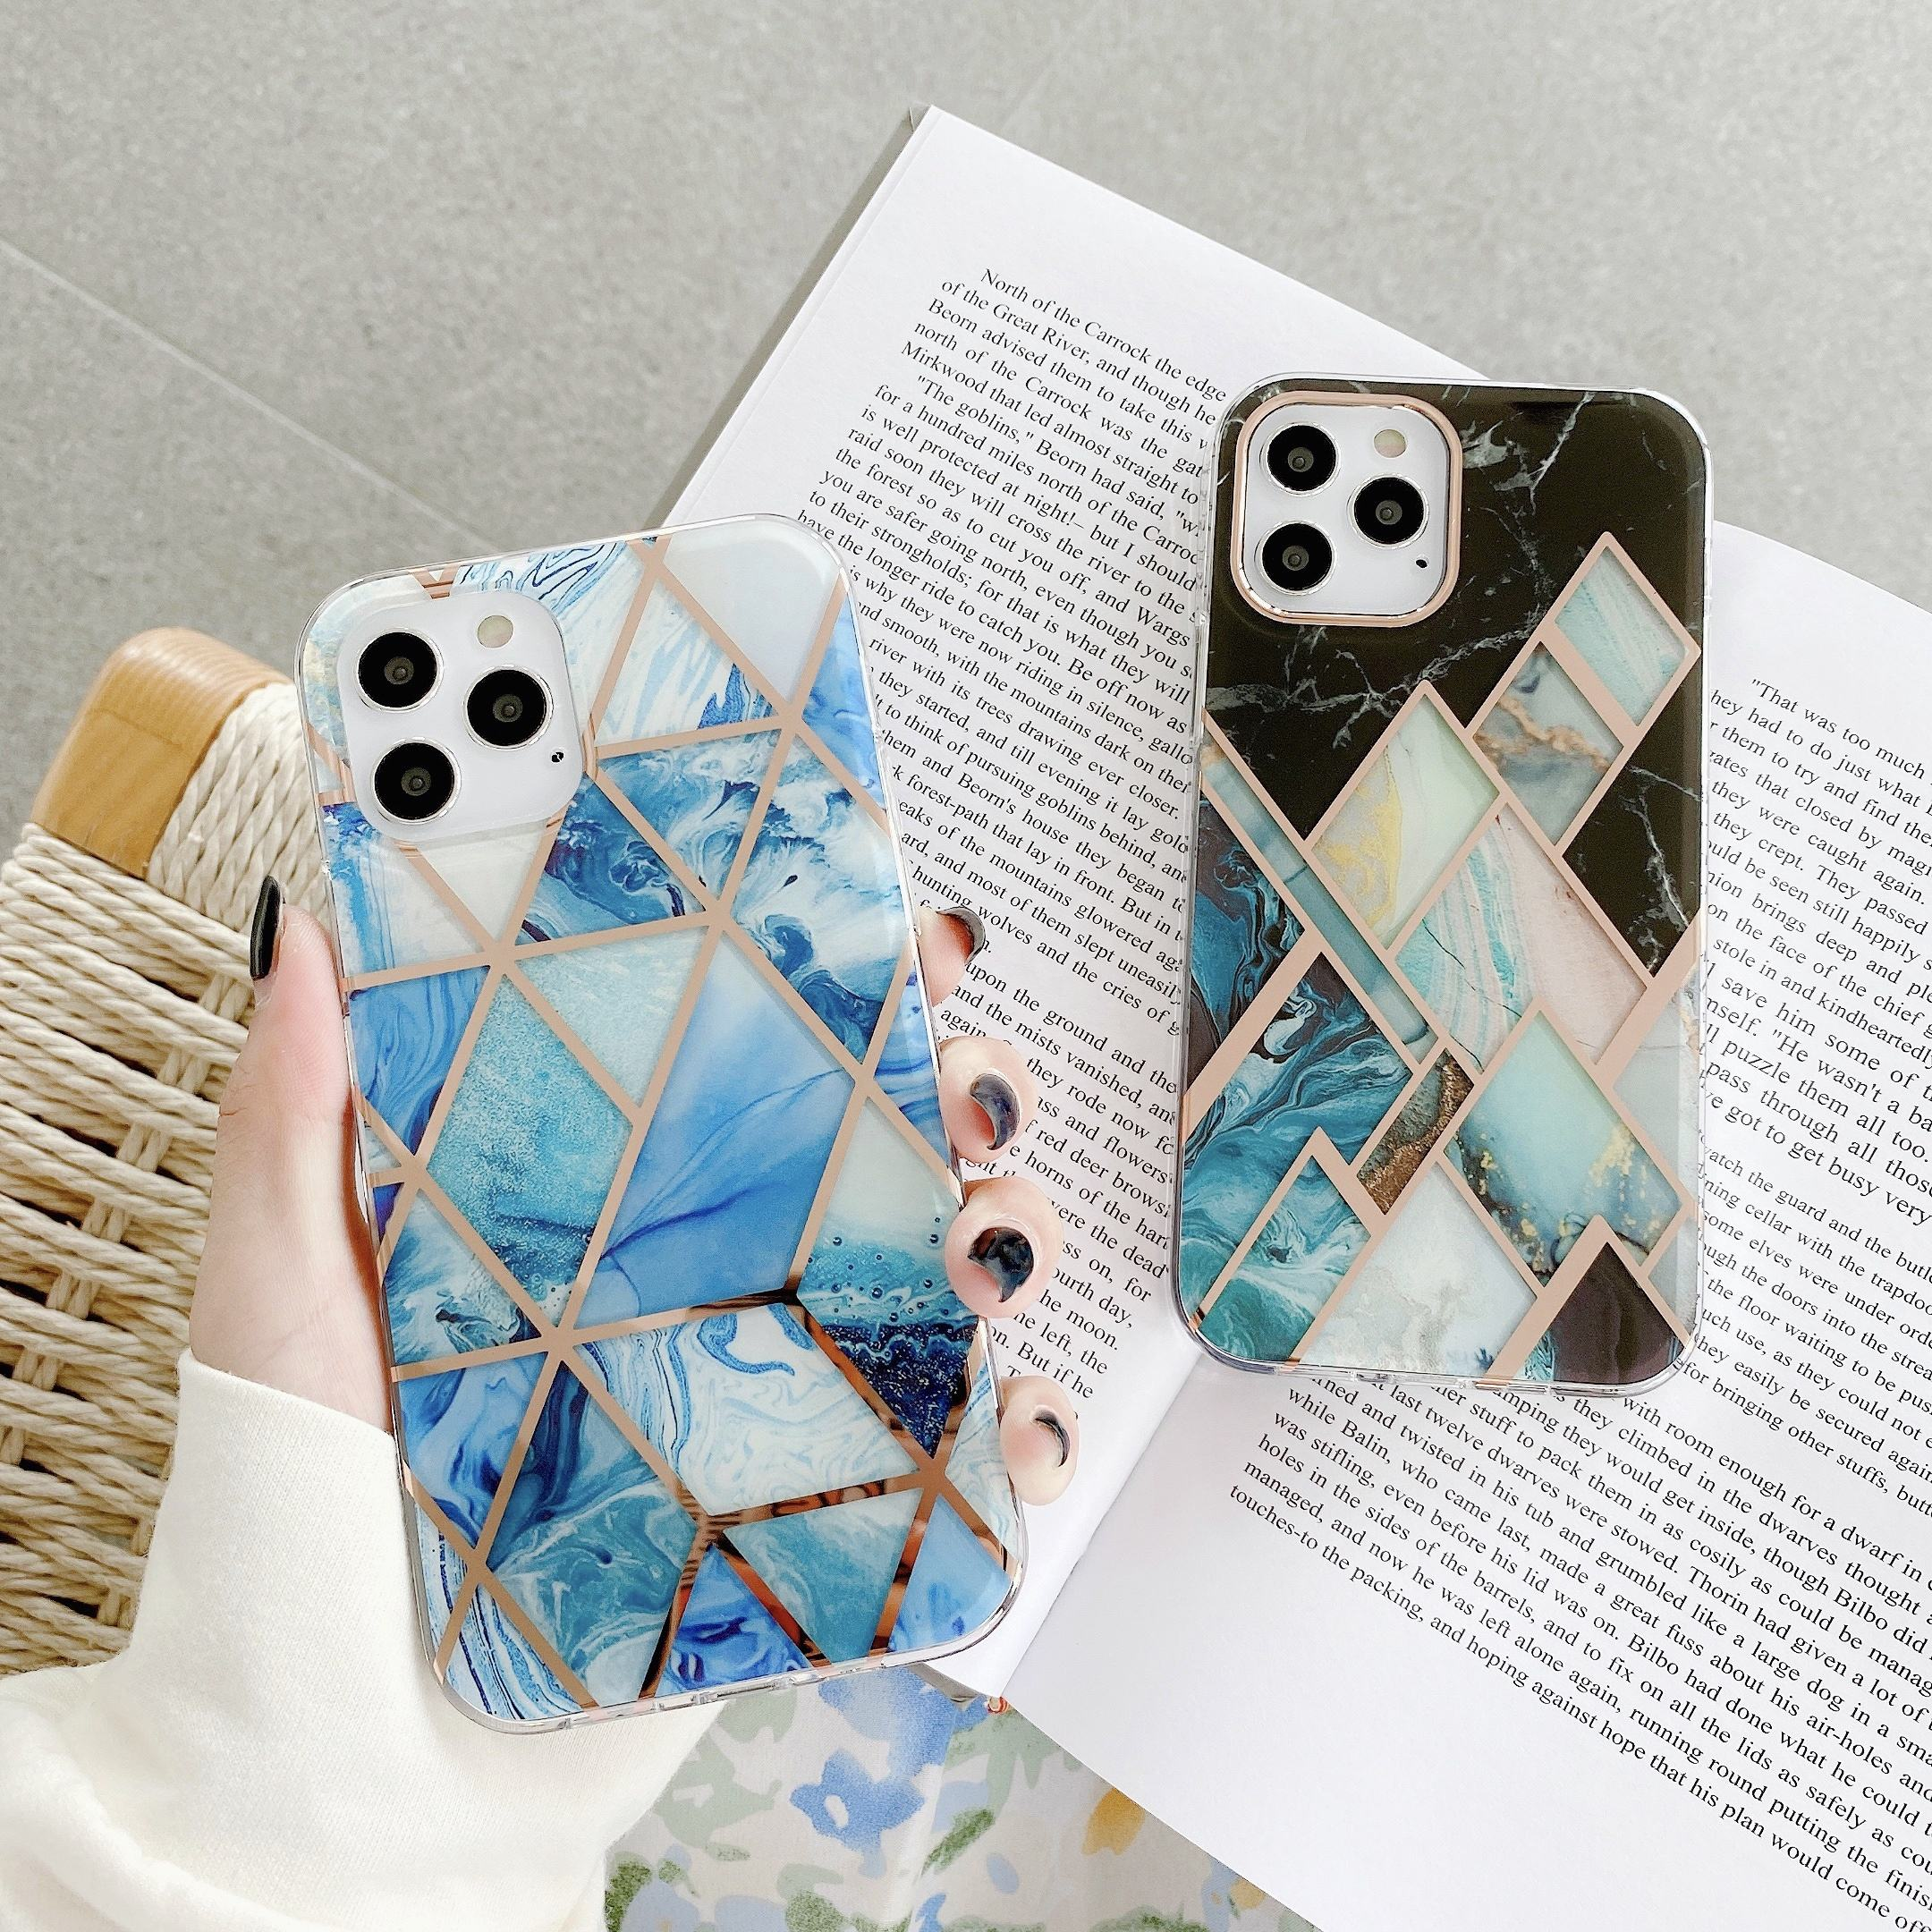 Custom OEM TPU Marble Back Cover for iPhone 11/11 Pro/11 Pro Max, Electroplated Marble Phone Case for iPhone 12 Mini/12/12 Pro